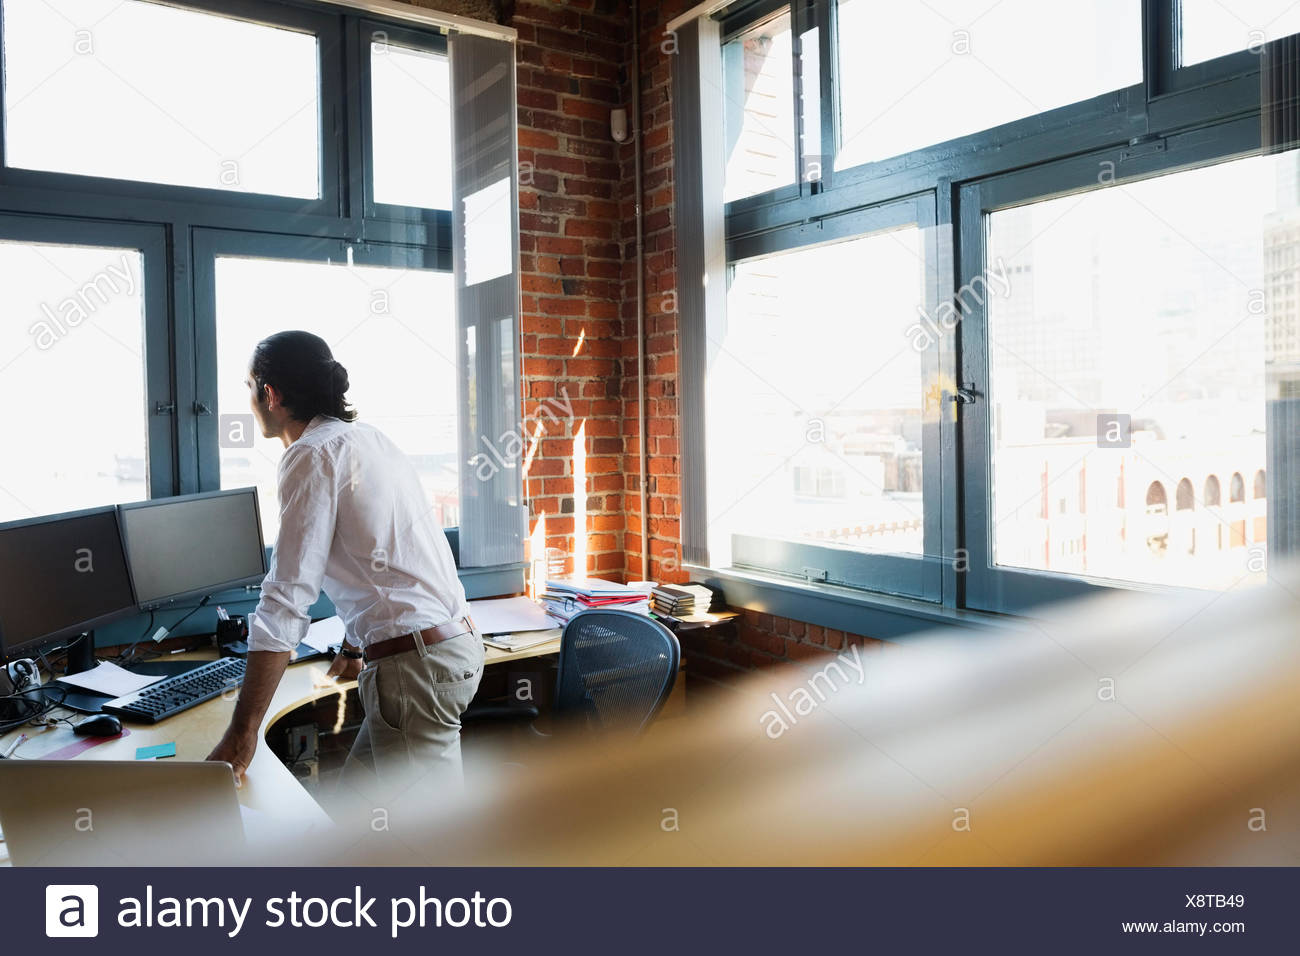 Pensive Businessman Looking Out Office Window   Stock Image